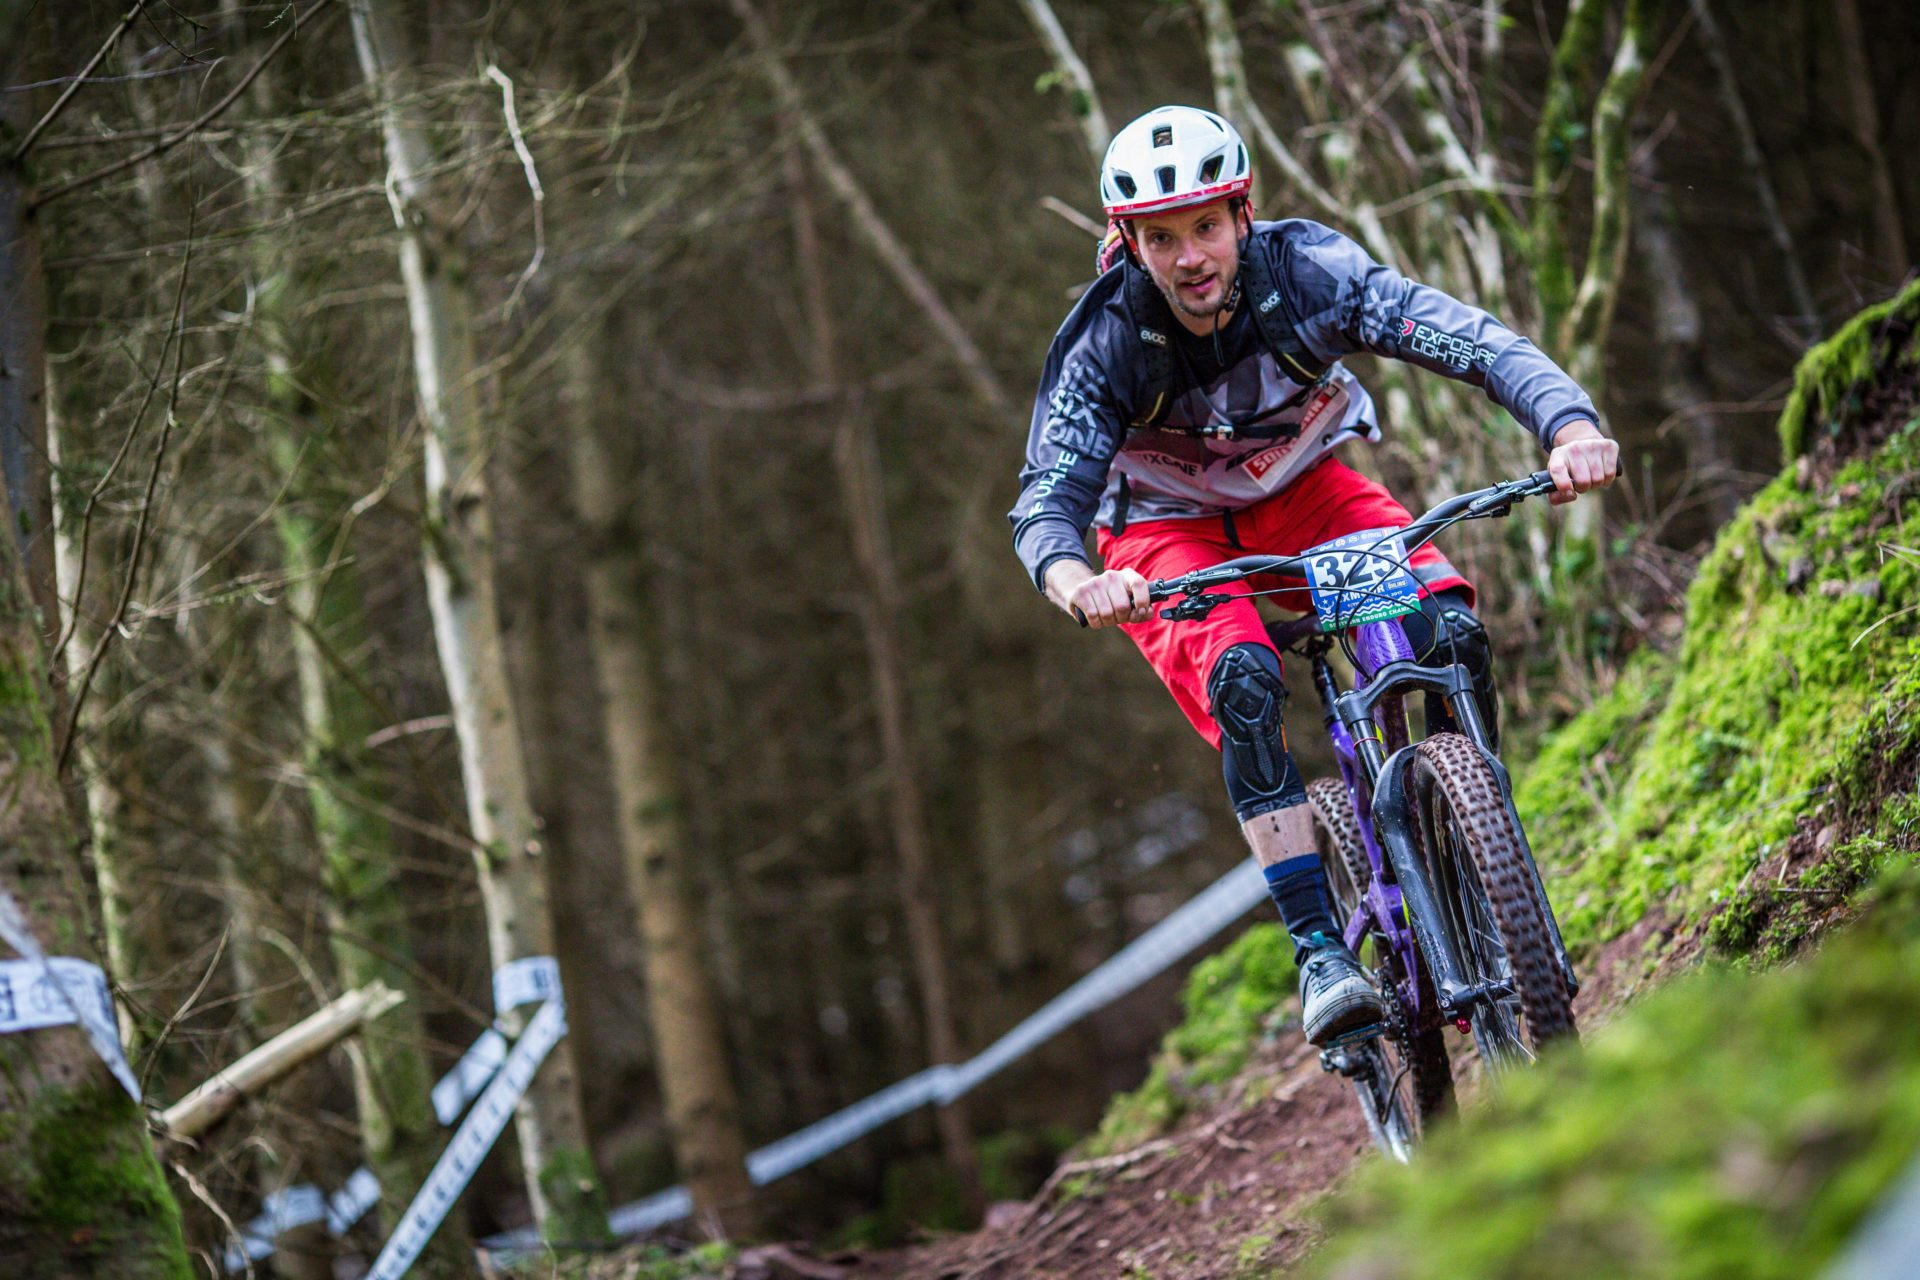 Race Results – 2020 Round 1 Minehead